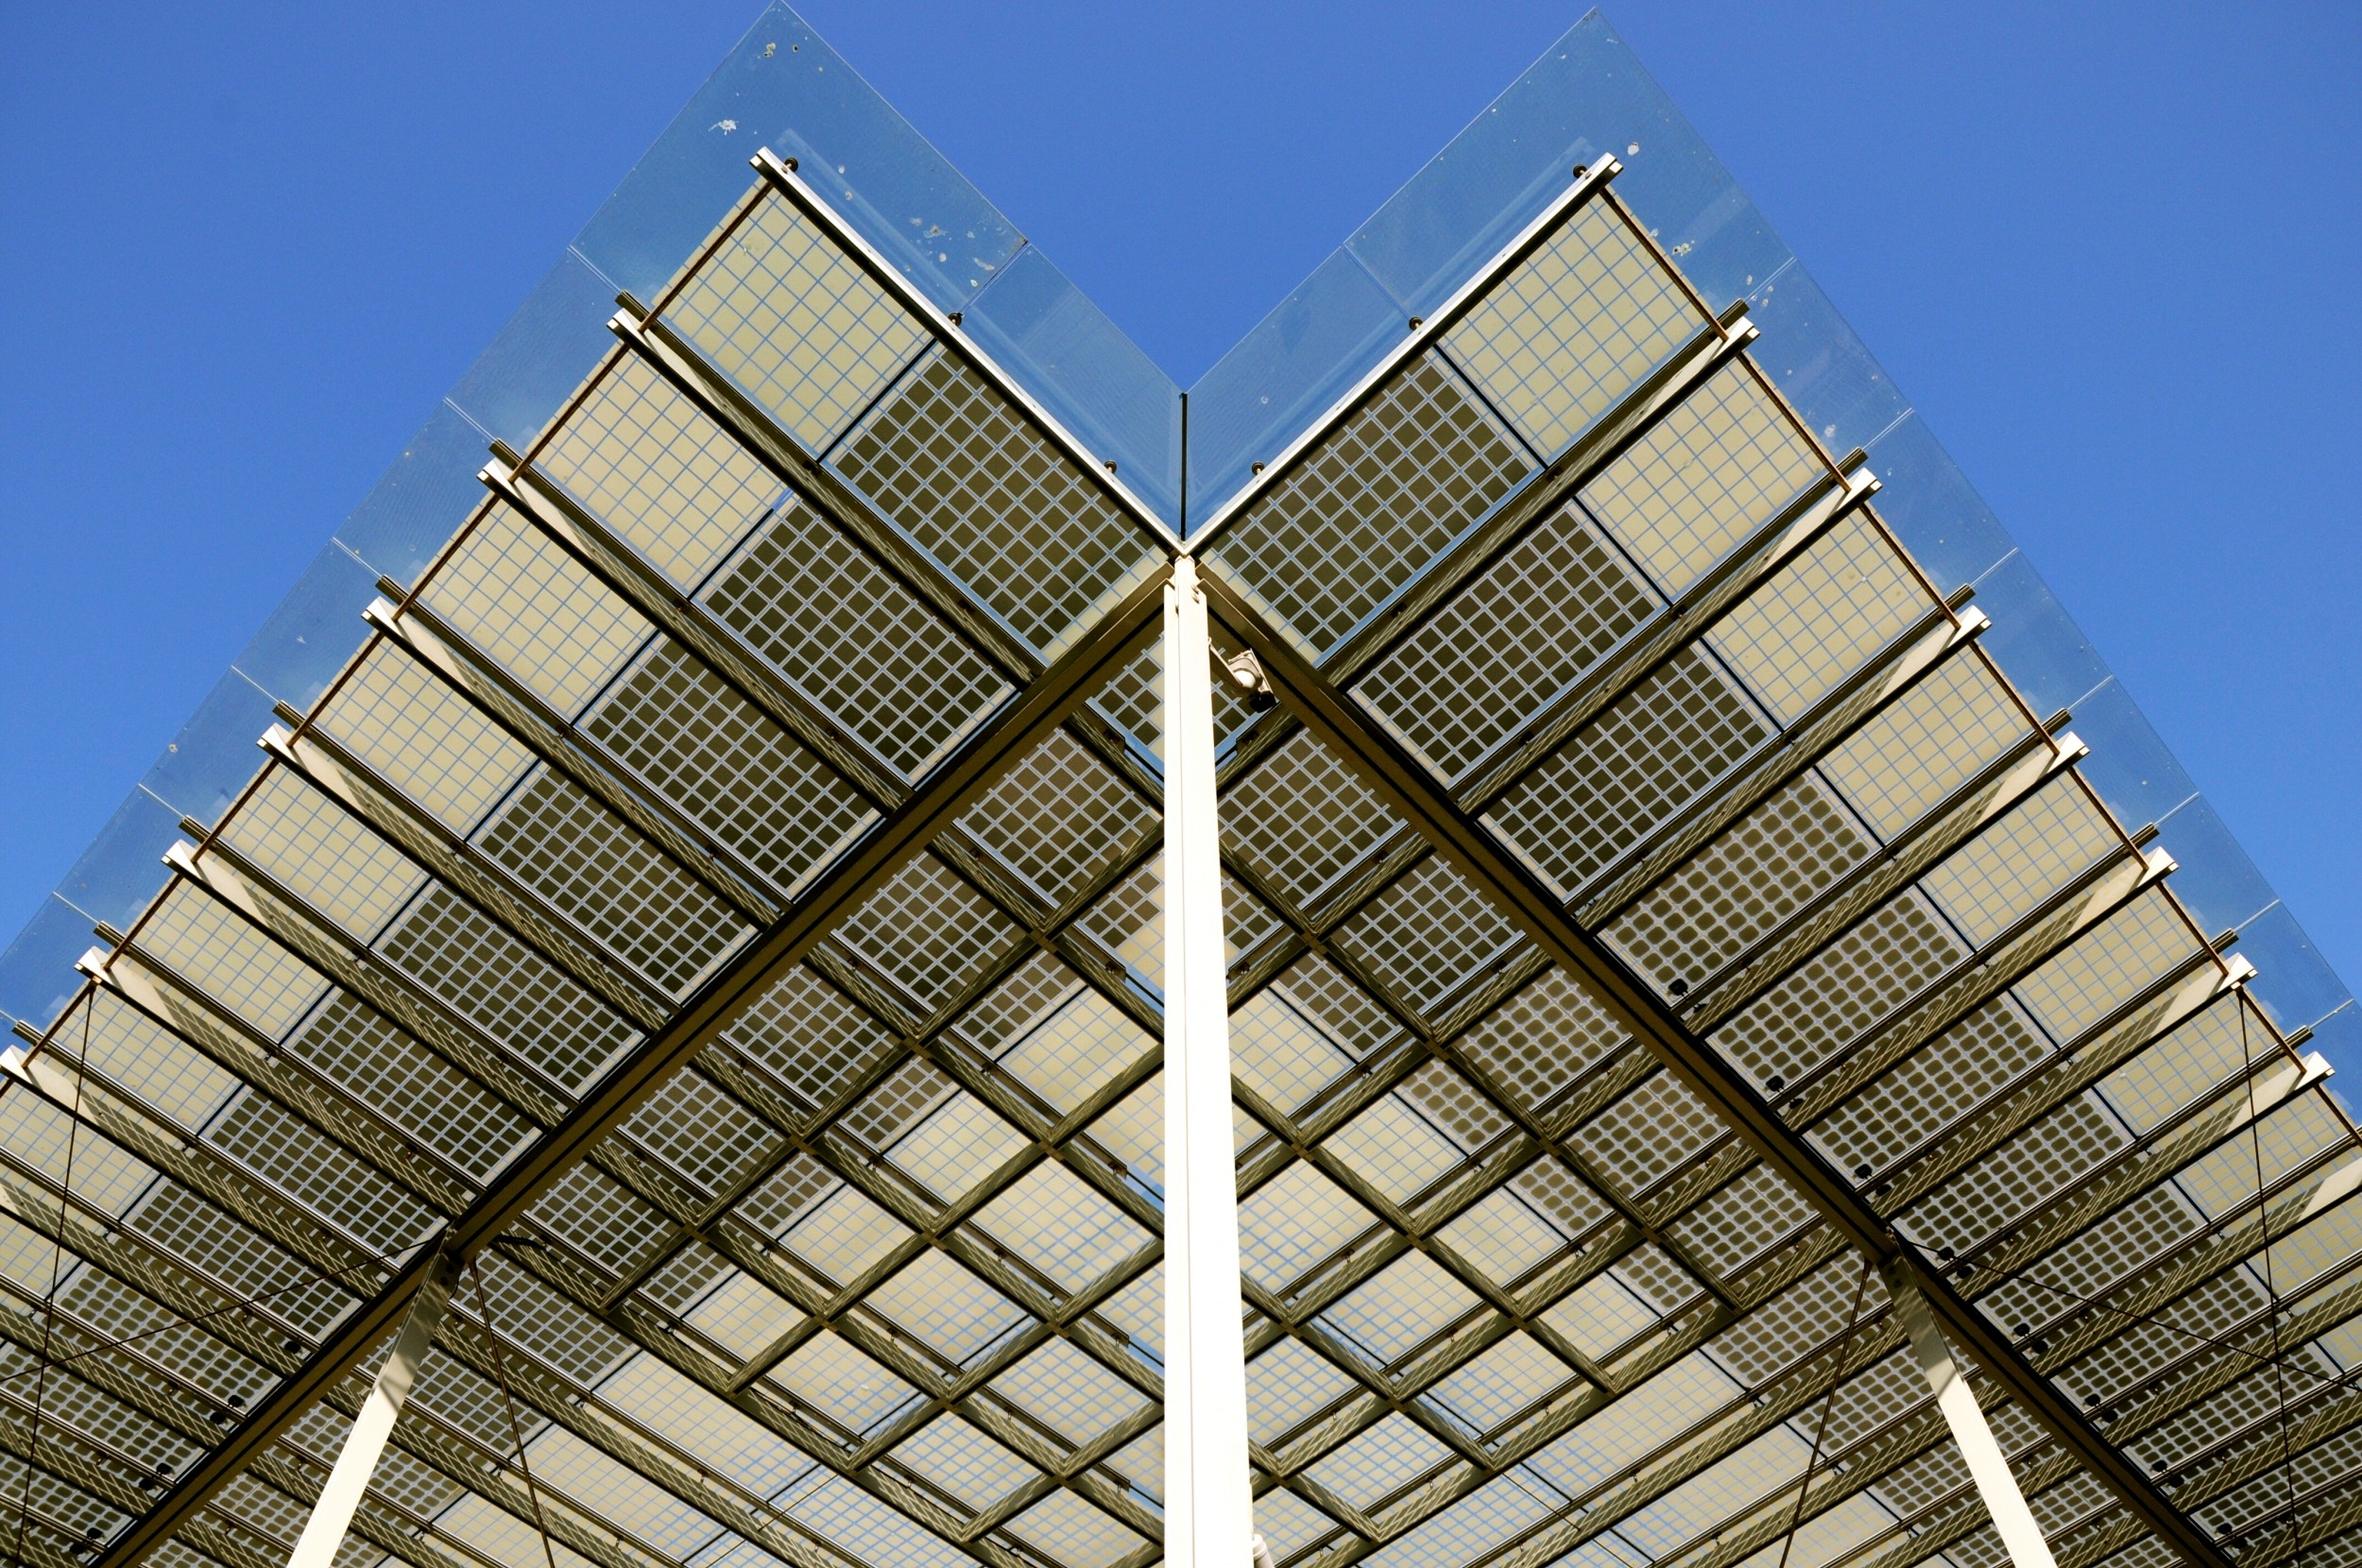 Solar cells integrated directly into the building envelope open up new architectural possibilities.